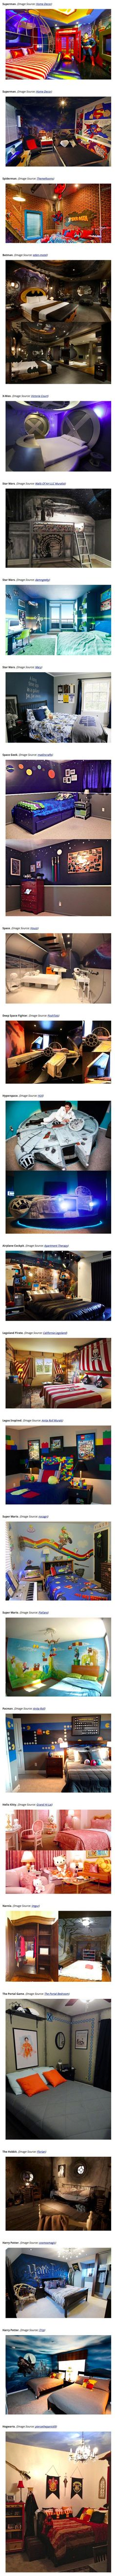 Because at the end of the day, what could be more fun than entering your very own world at night and waking from your fantasy dream every morning? Be you pirate or wizard, jedi or gamer, these are the 25 fantasy-themed bedrooms to die for.